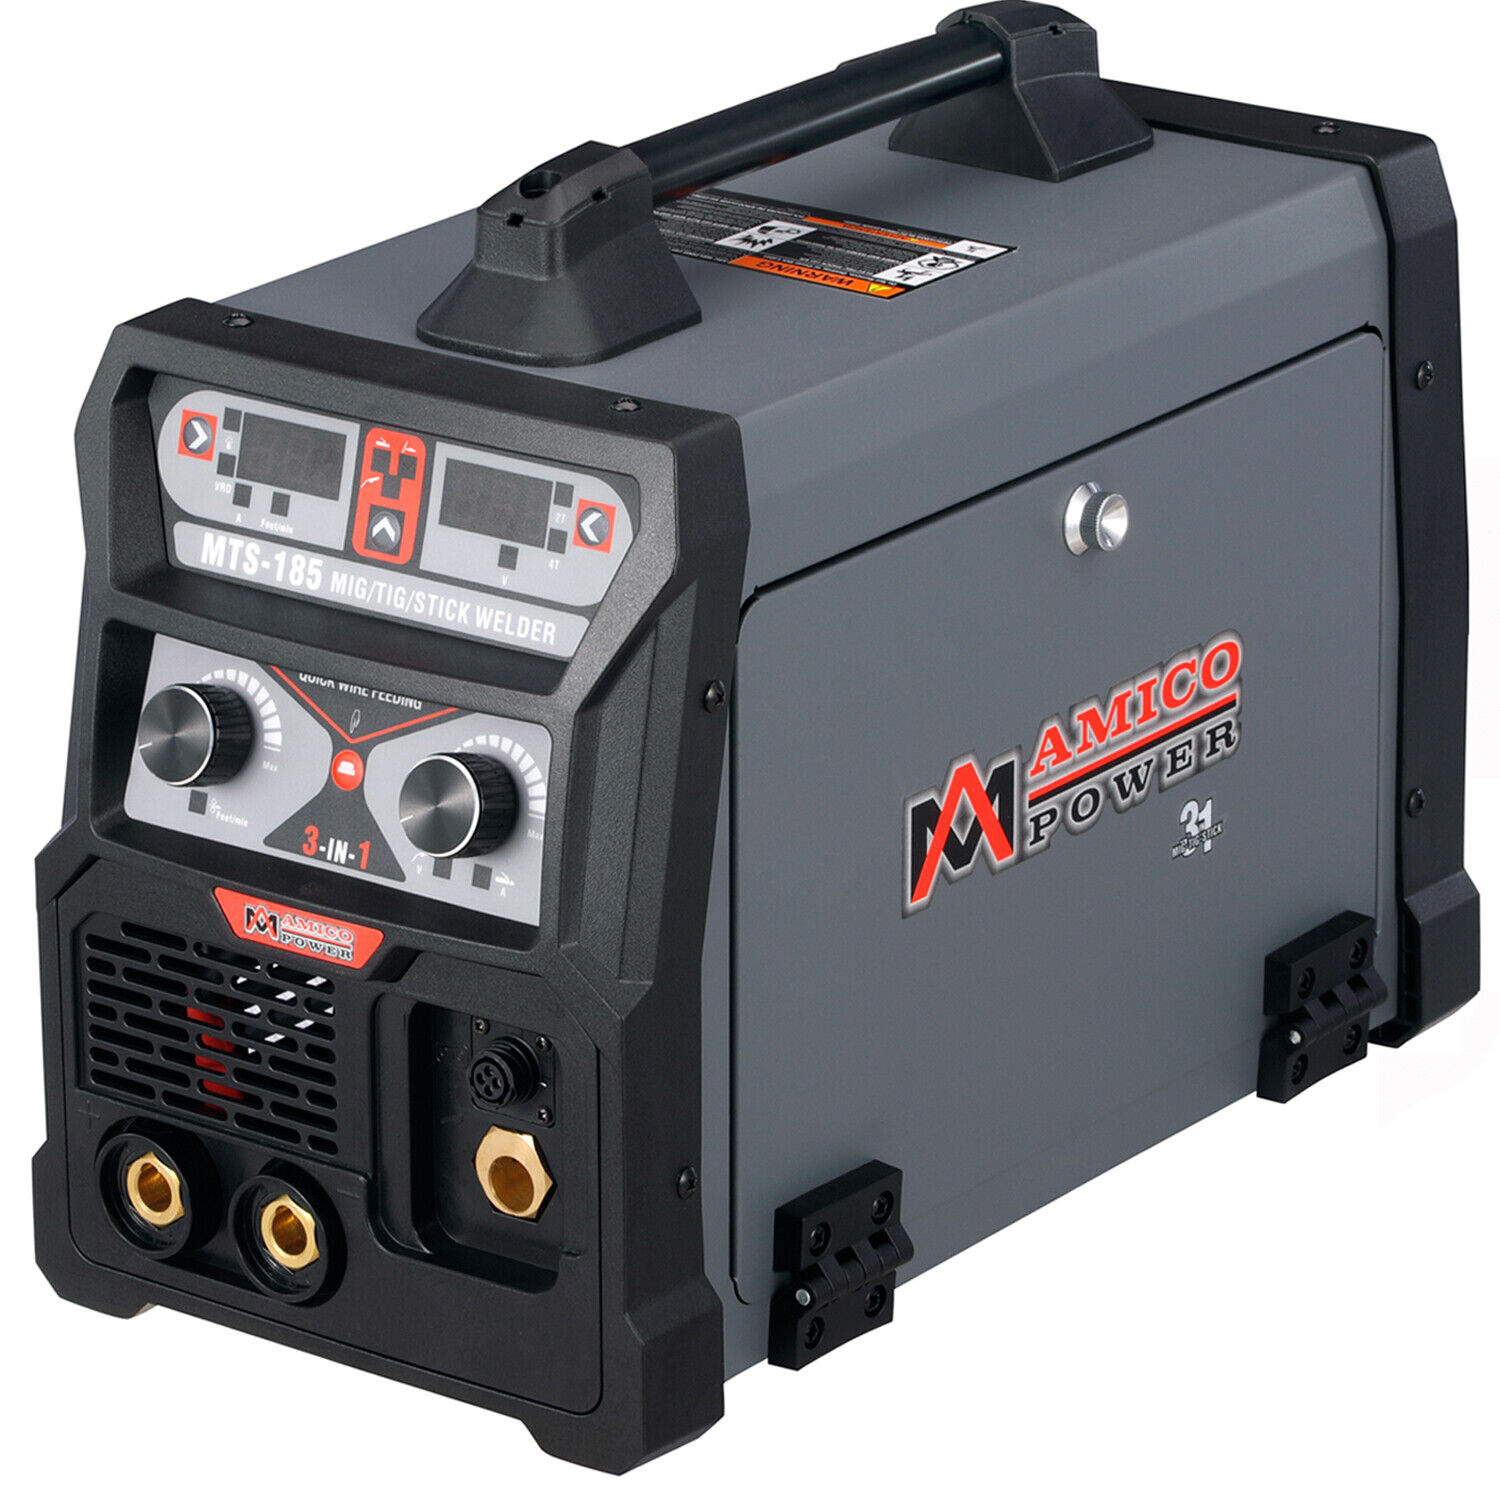 MTS-185 Amp MIG/Flux Cored, TIG Torch, Stick ARC 3-IN-1 Combo Welder, 110/230V. Buy it now for 437.00